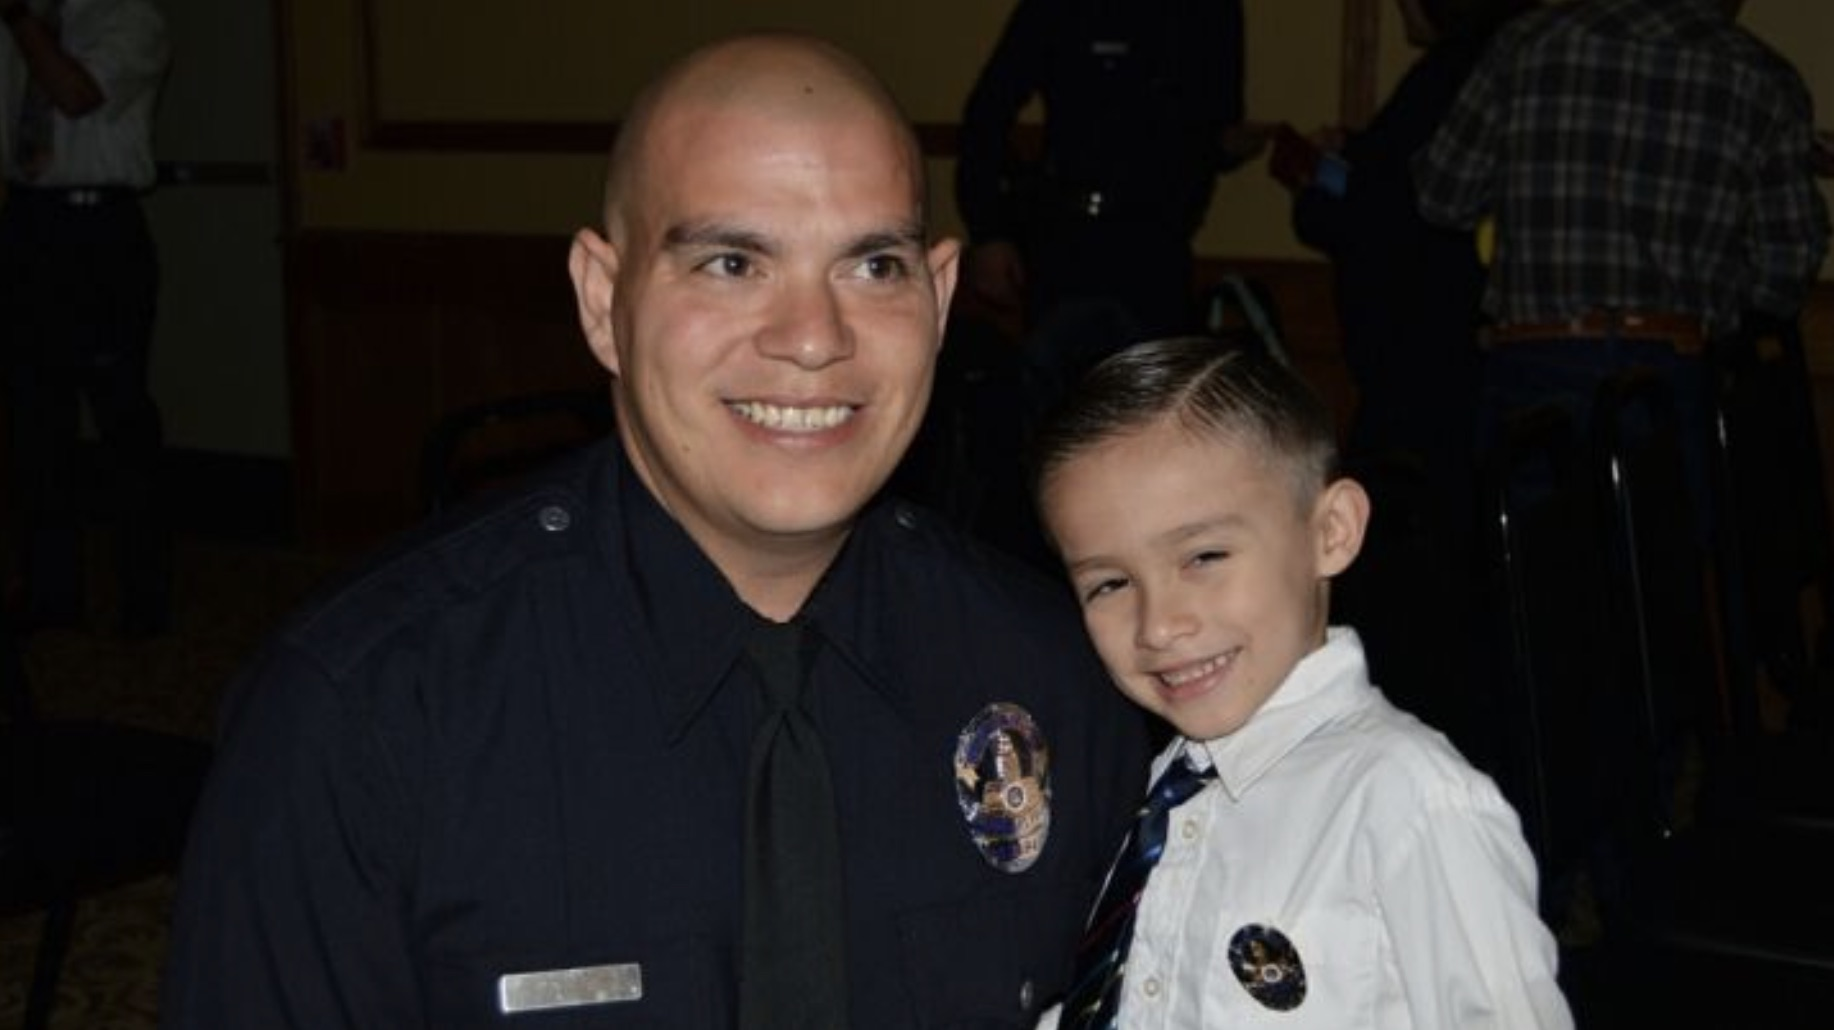 Officer Raul Ramirez is pictured with his son. (Courtesy GoFundMe)